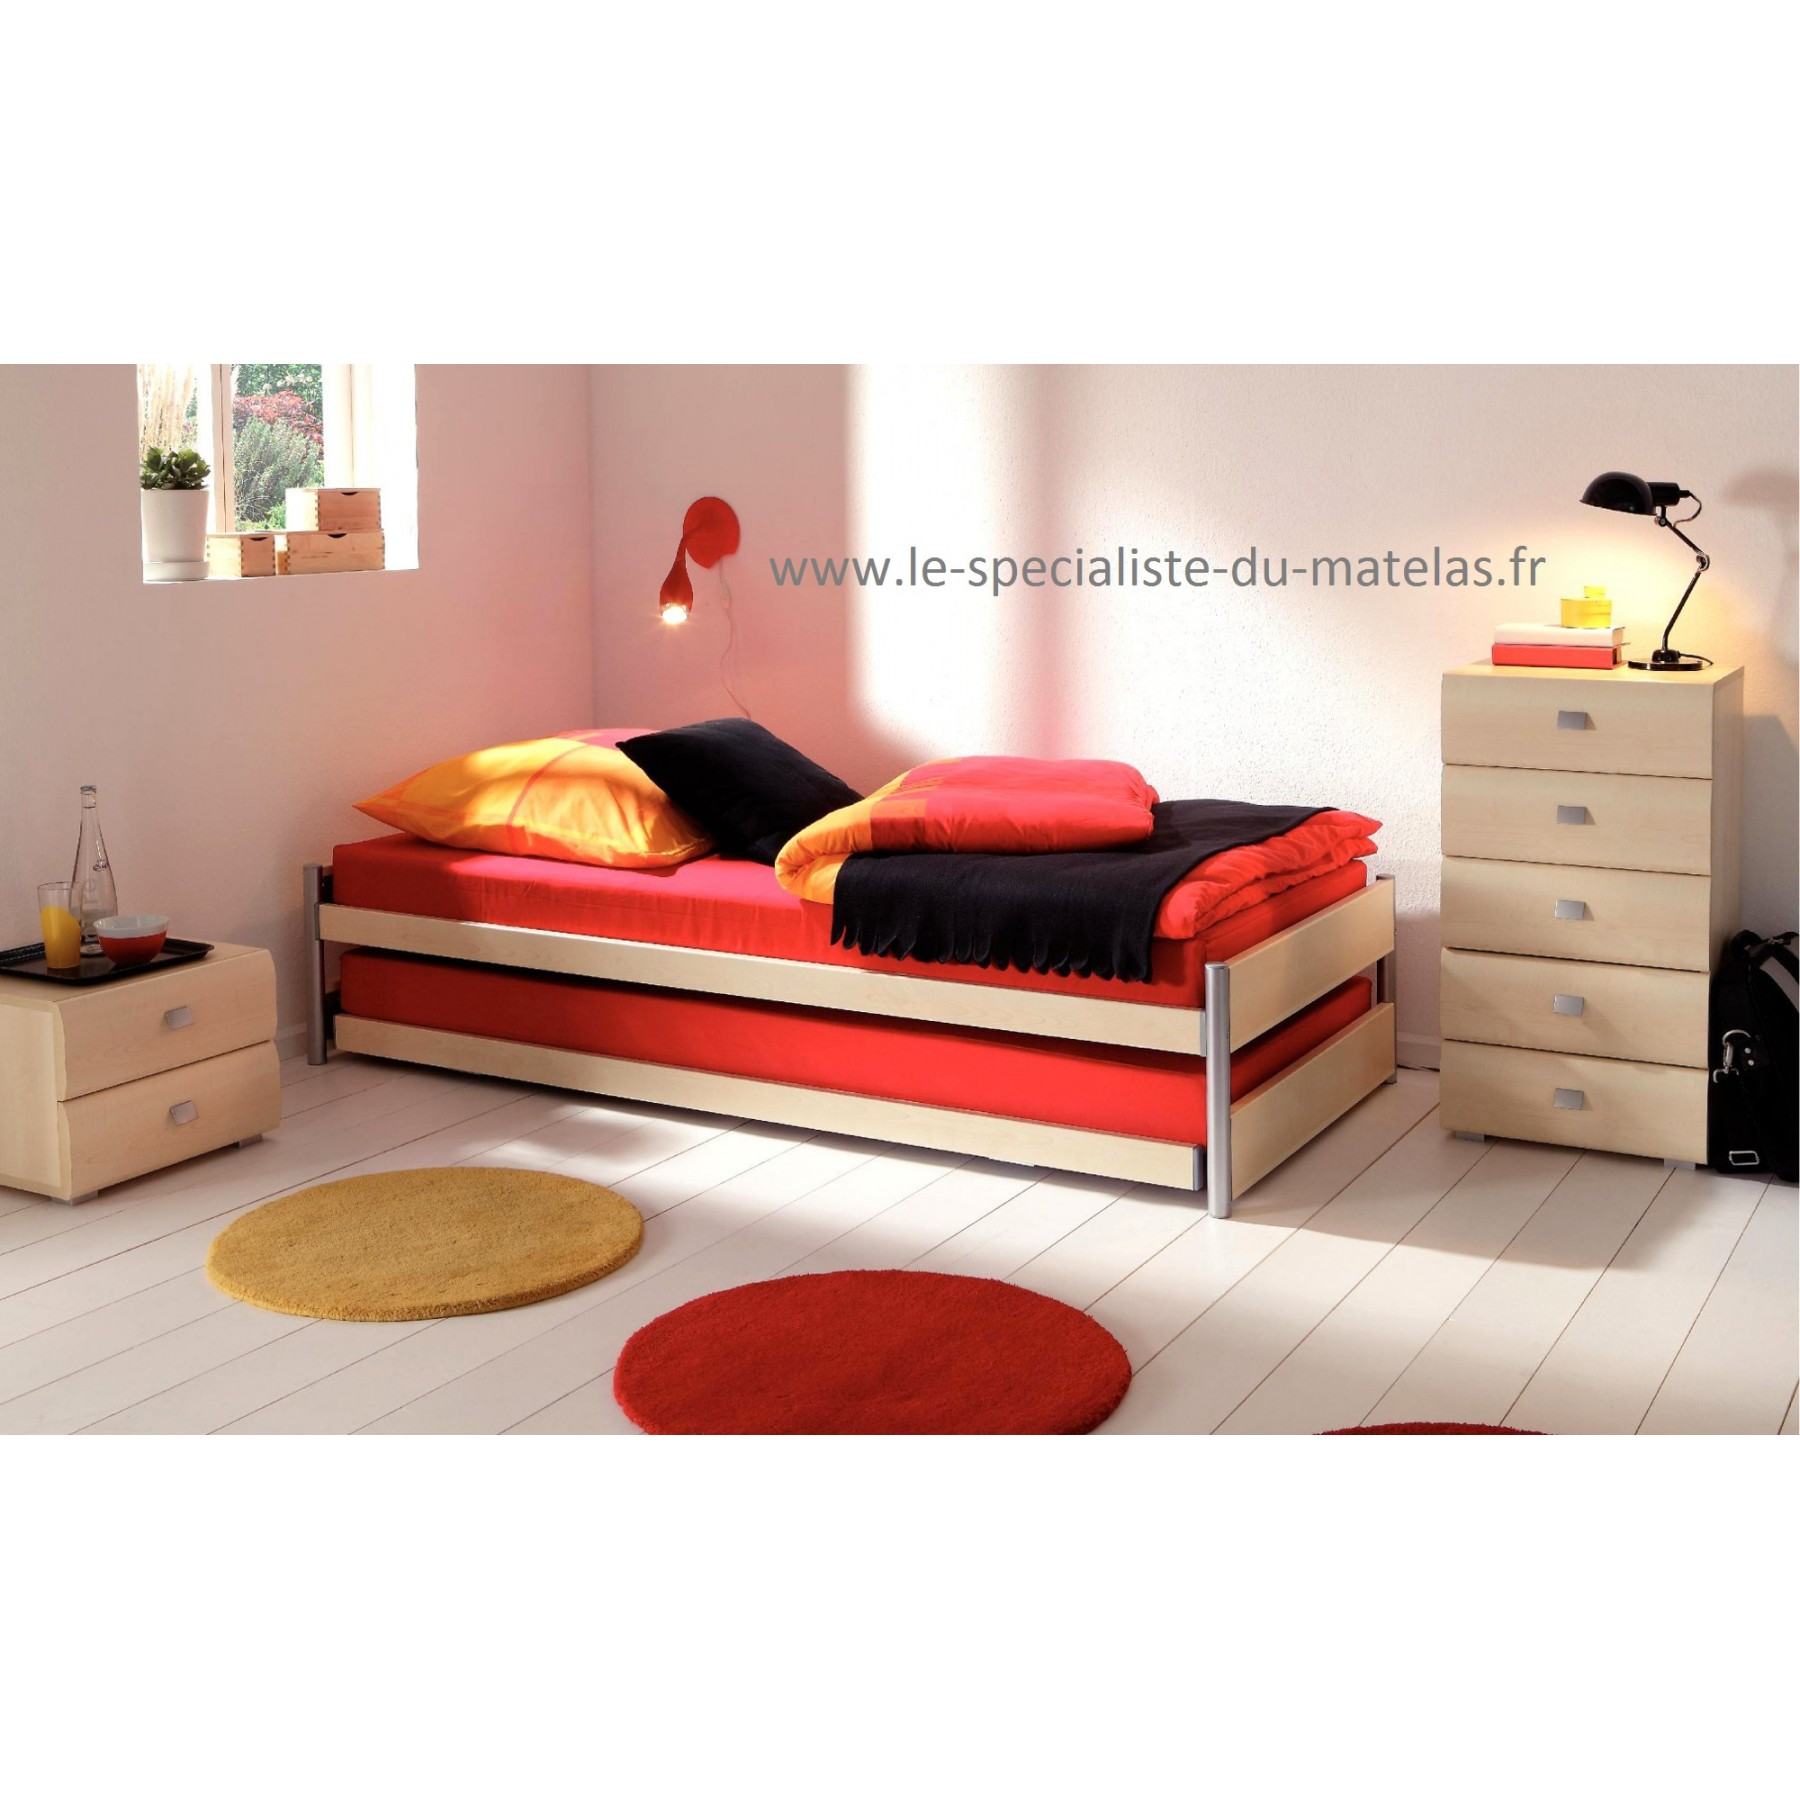 lit gigogne hasena mod le clic d couvrir au le sp cialiste du matelas. Black Bedroom Furniture Sets. Home Design Ideas